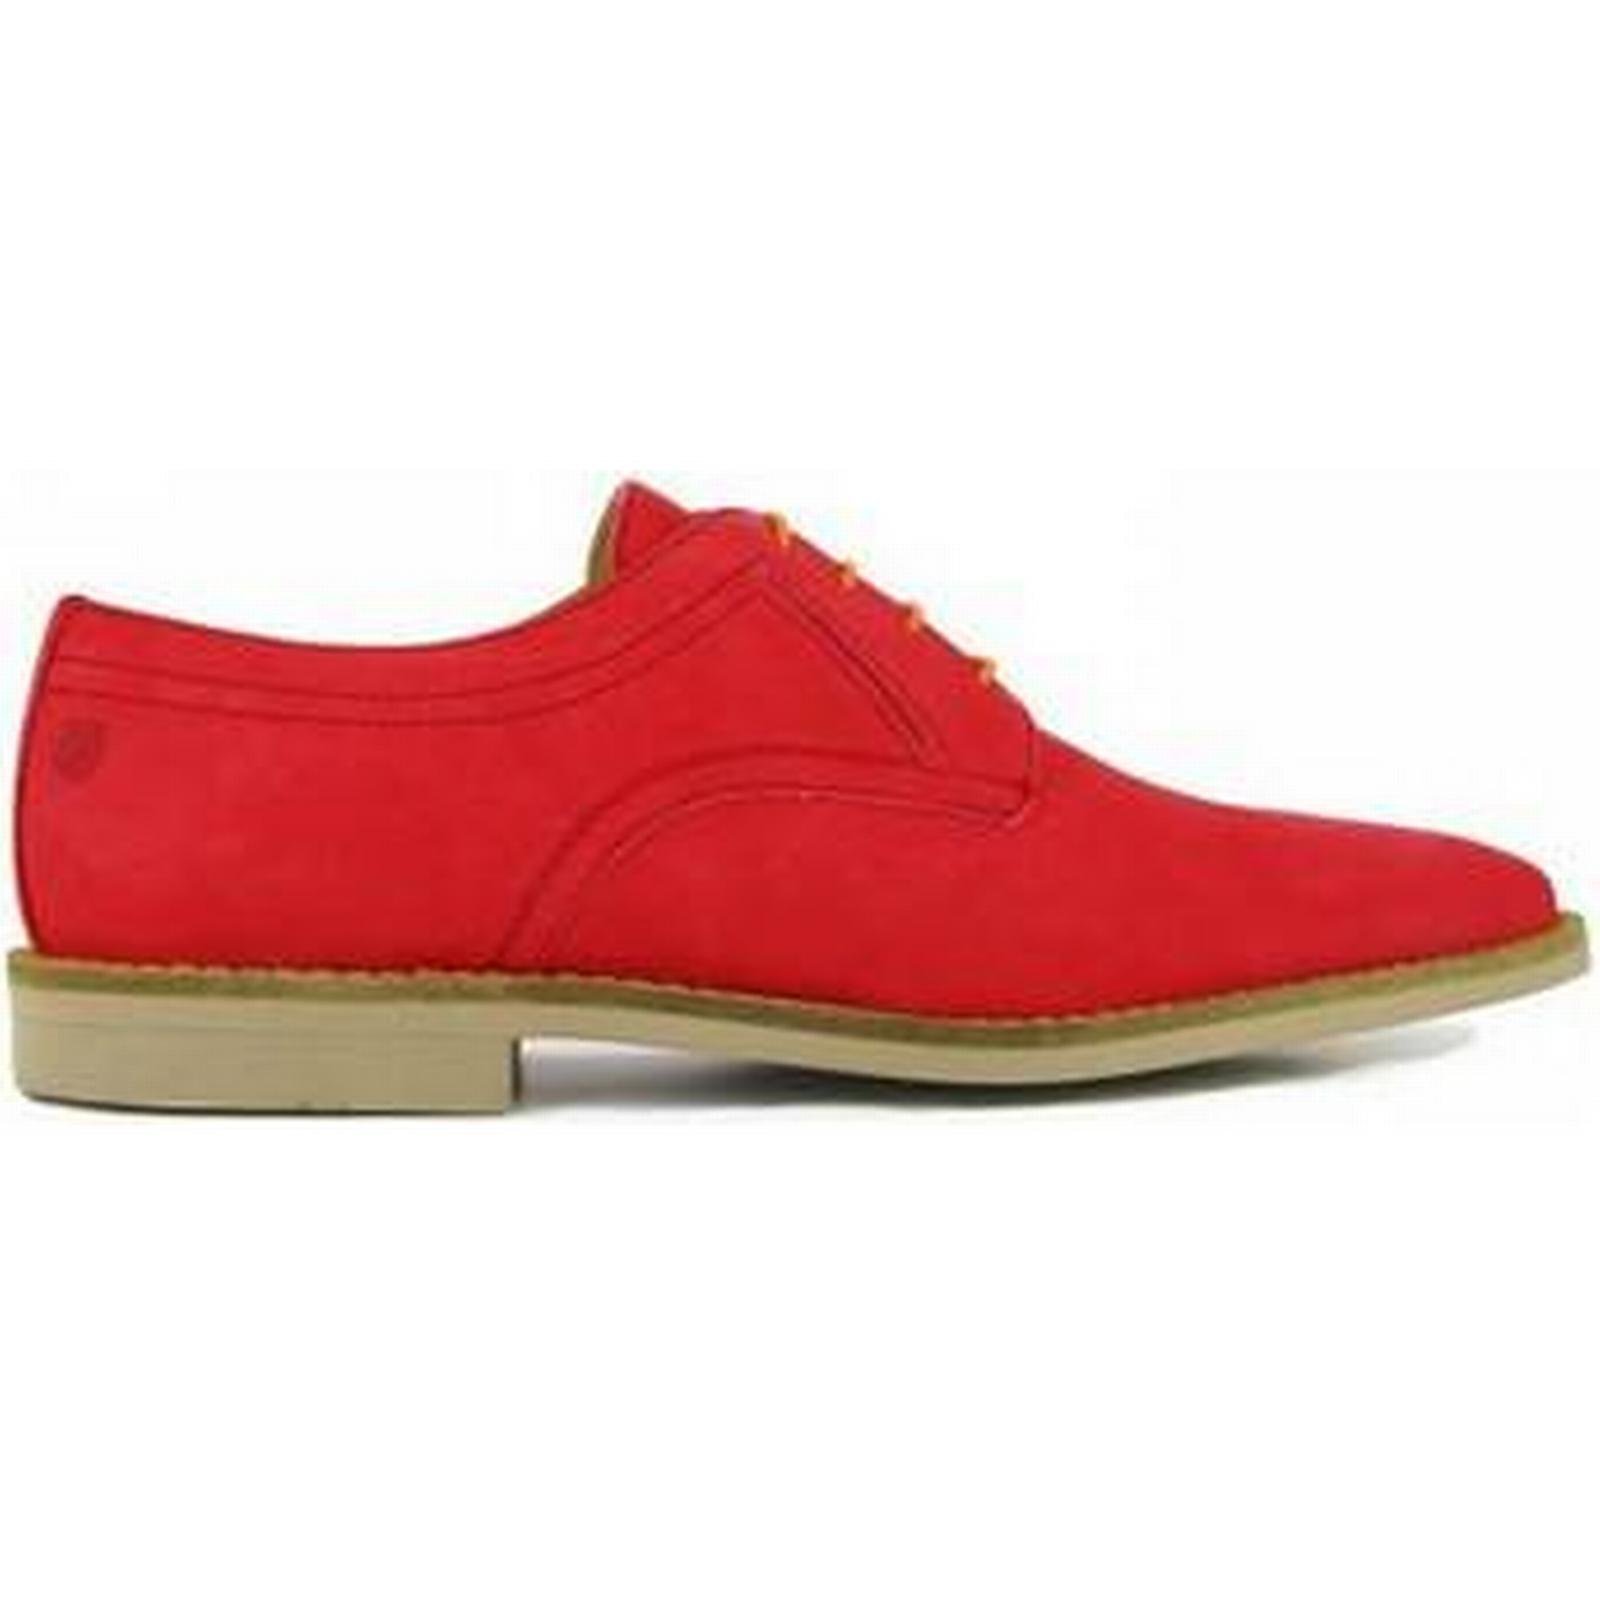 spartoo.co.uk peter blade derby cuir cuir cuir rouge peras hommes & #  ; s souliers rouges 6335ce